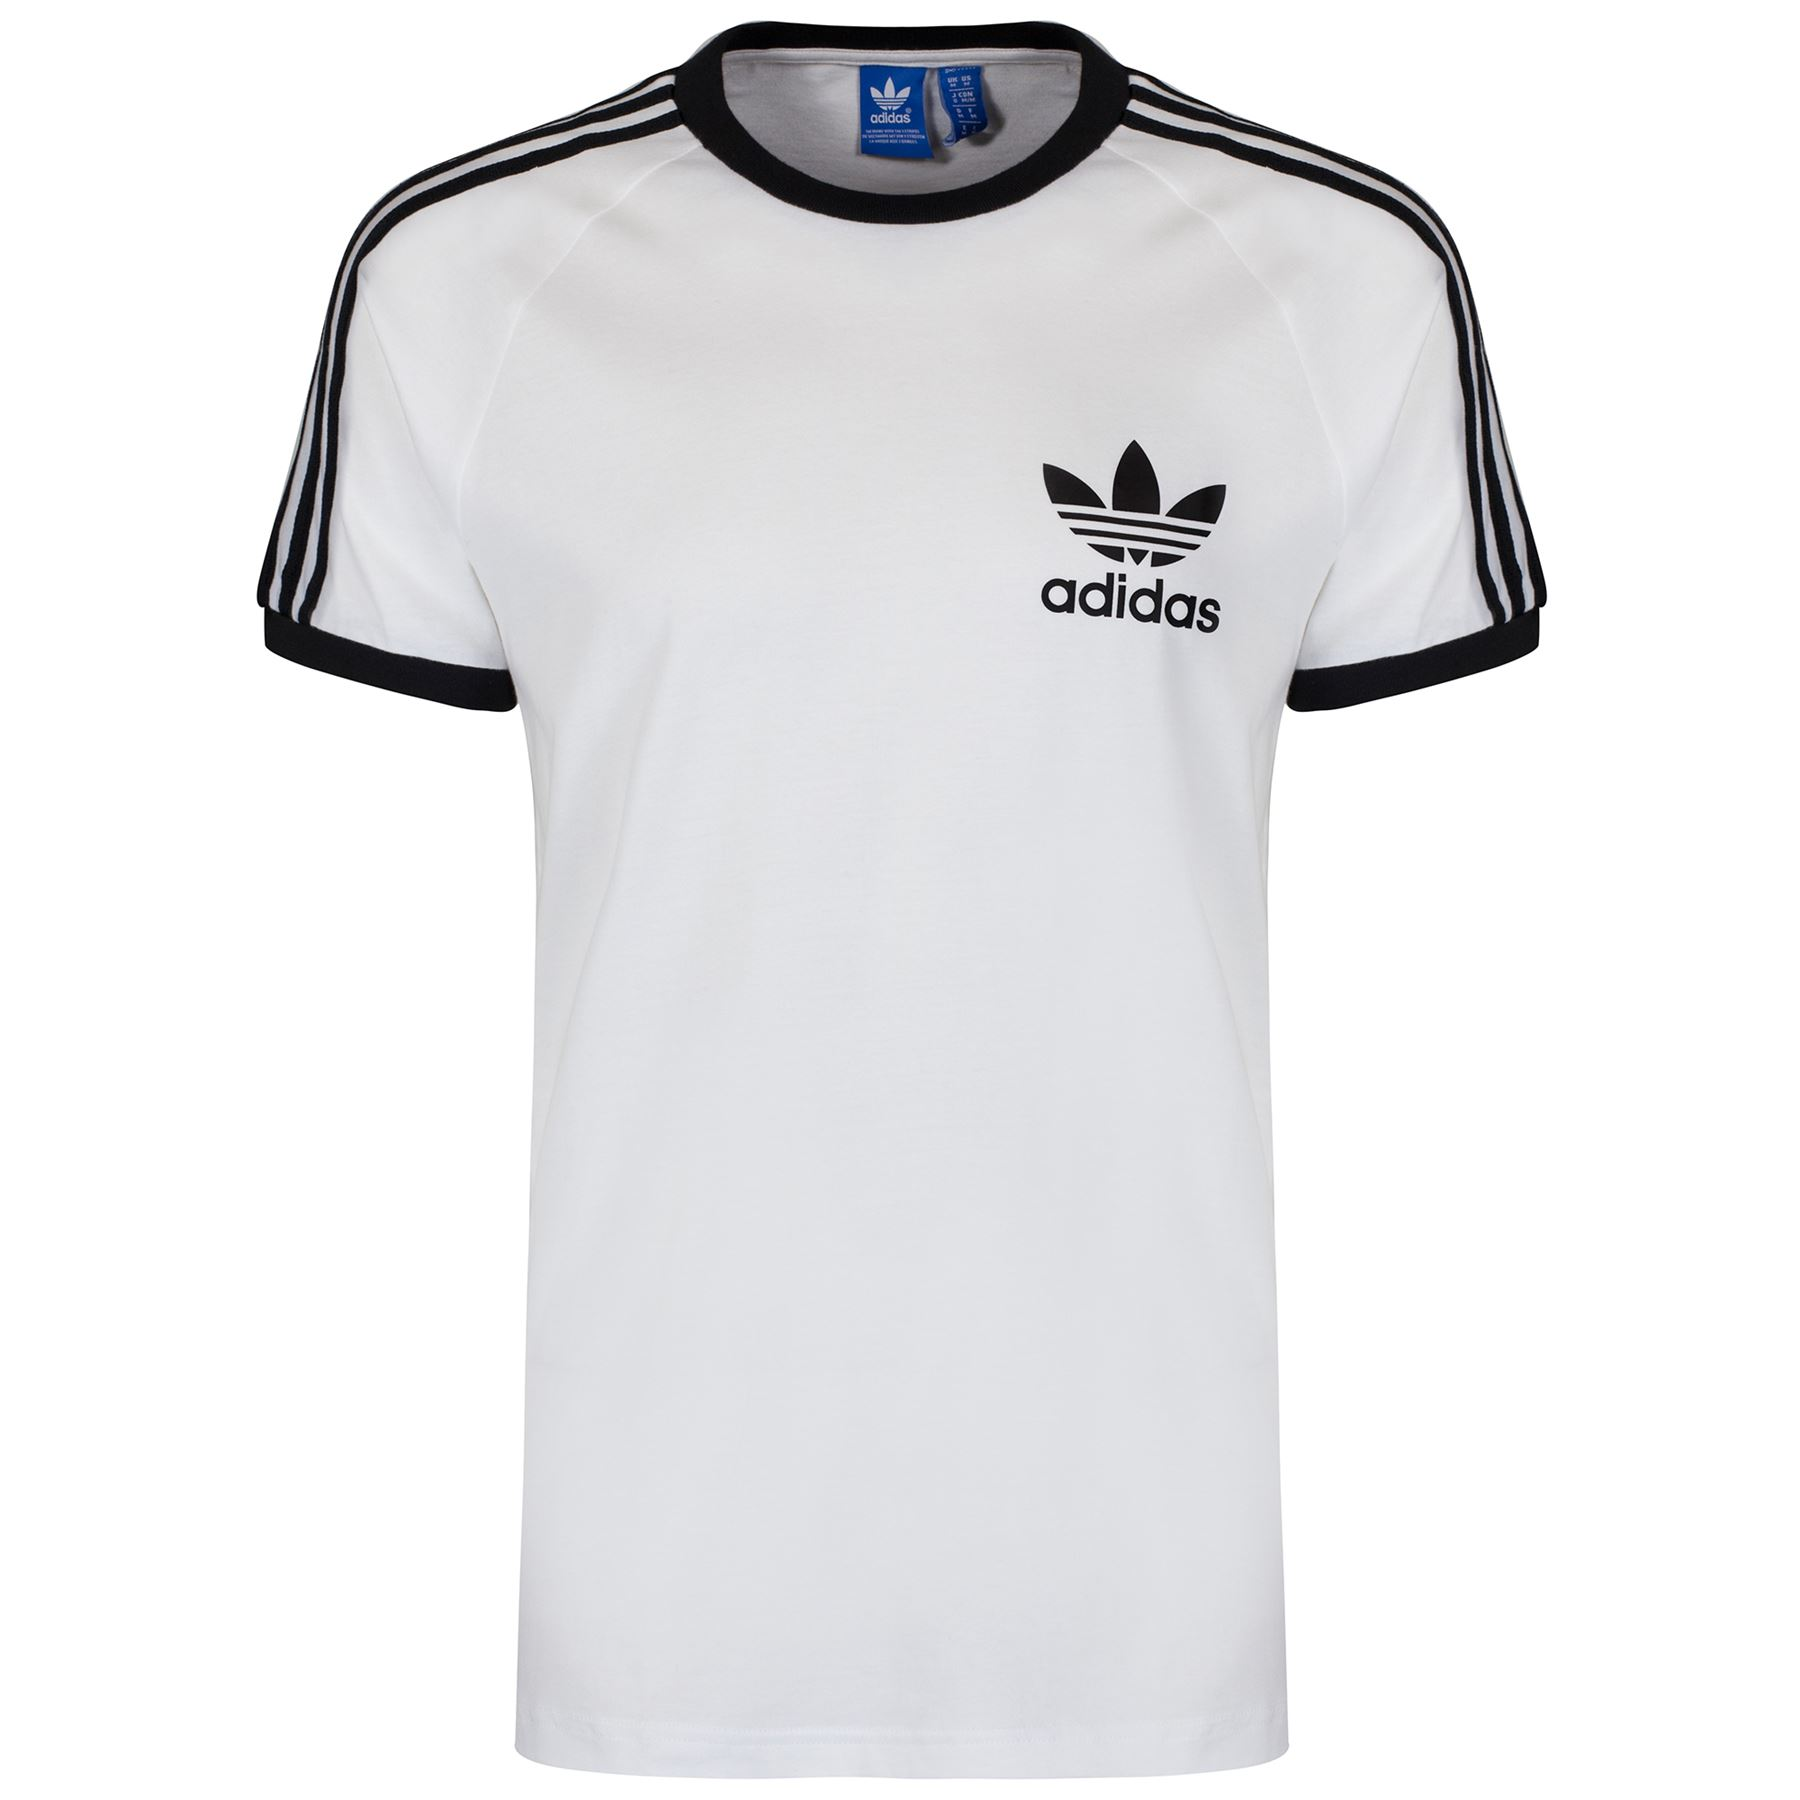 adidas originals california tee mens multi colour size trefoil t shirt. Black Bedroom Furniture Sets. Home Design Ideas